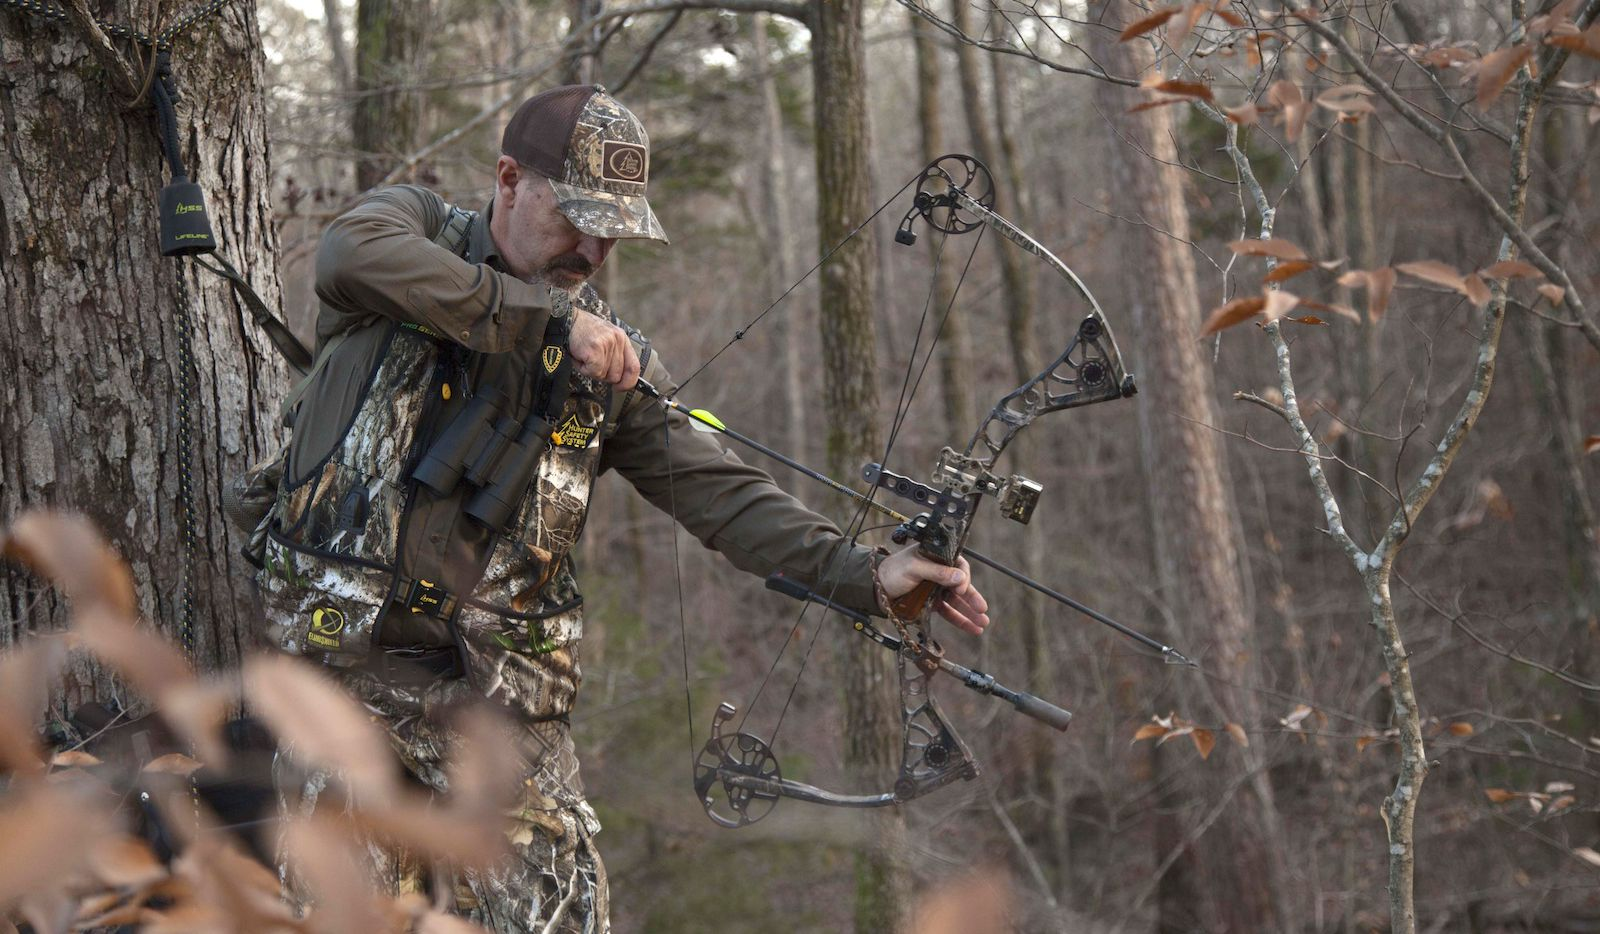 Archery hunters frequently rely on tree stands to elevate themselves well above ground to help beat the whitetail s sharp eyesight and keen sense of smell. Using a high quality safety harness and Lifeline like those manufactured by Hunter Safety System will greatly reduce the chances of taking an unexpected tumble.